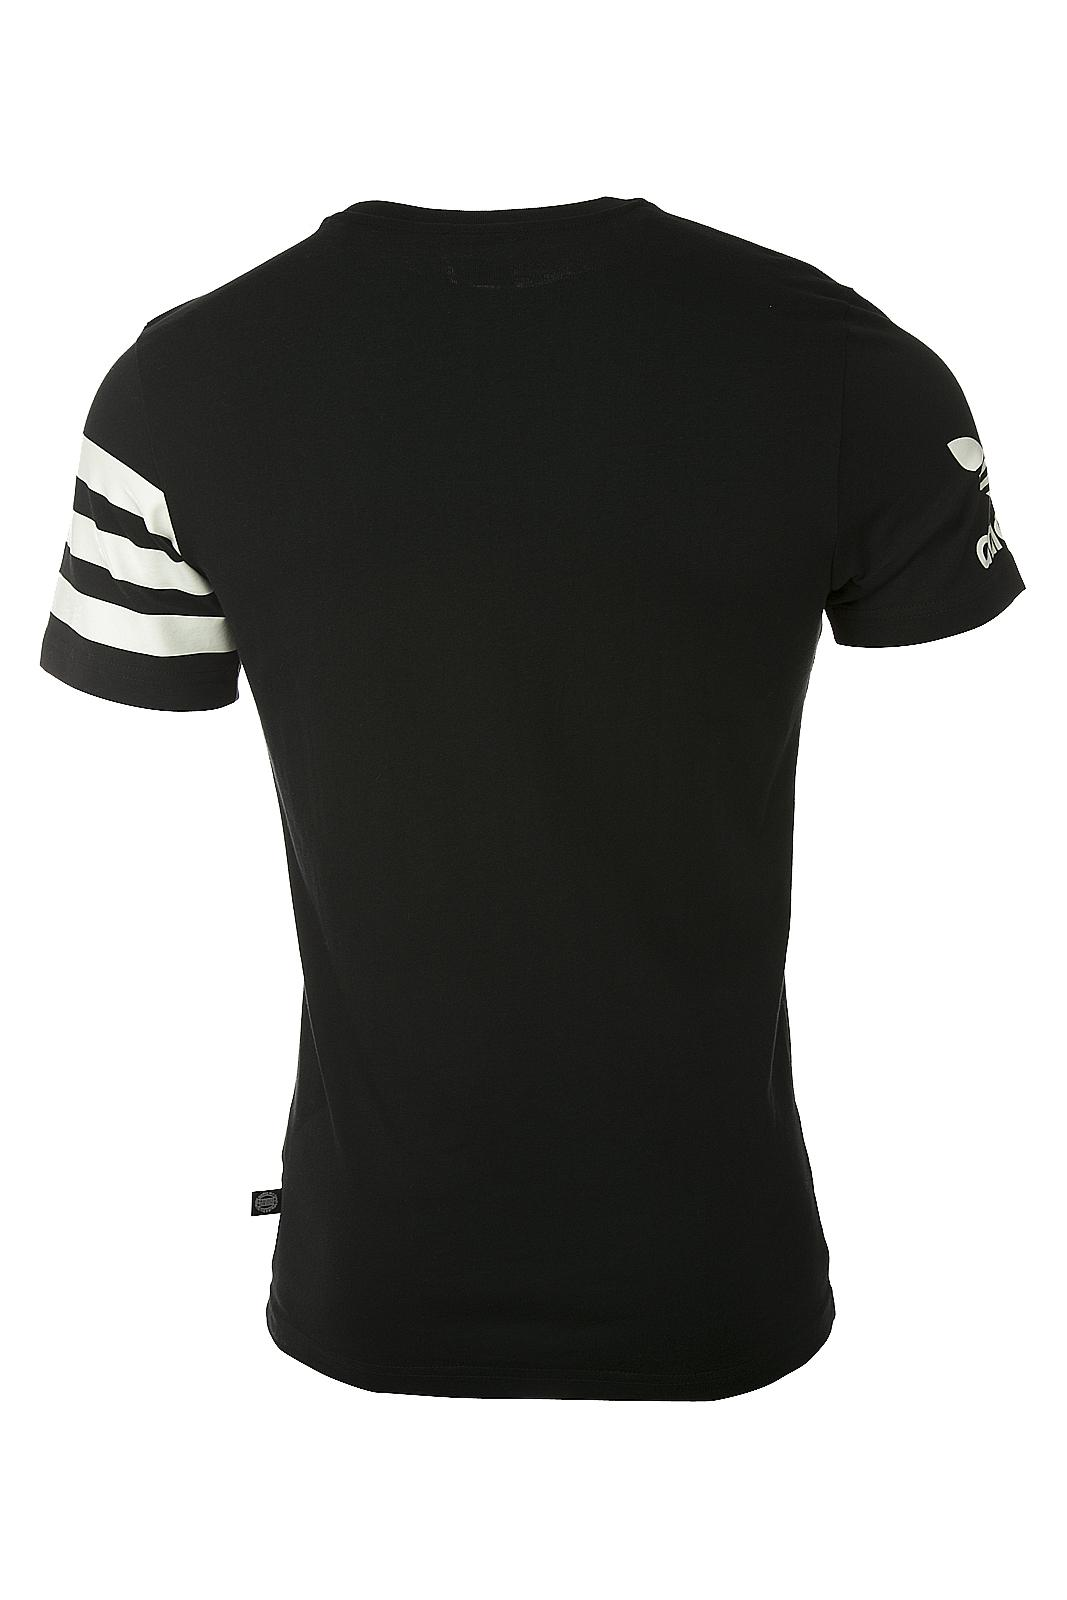 Adidas Original Mens Sports Essential Logo Tees S18630 Black Summer Tees